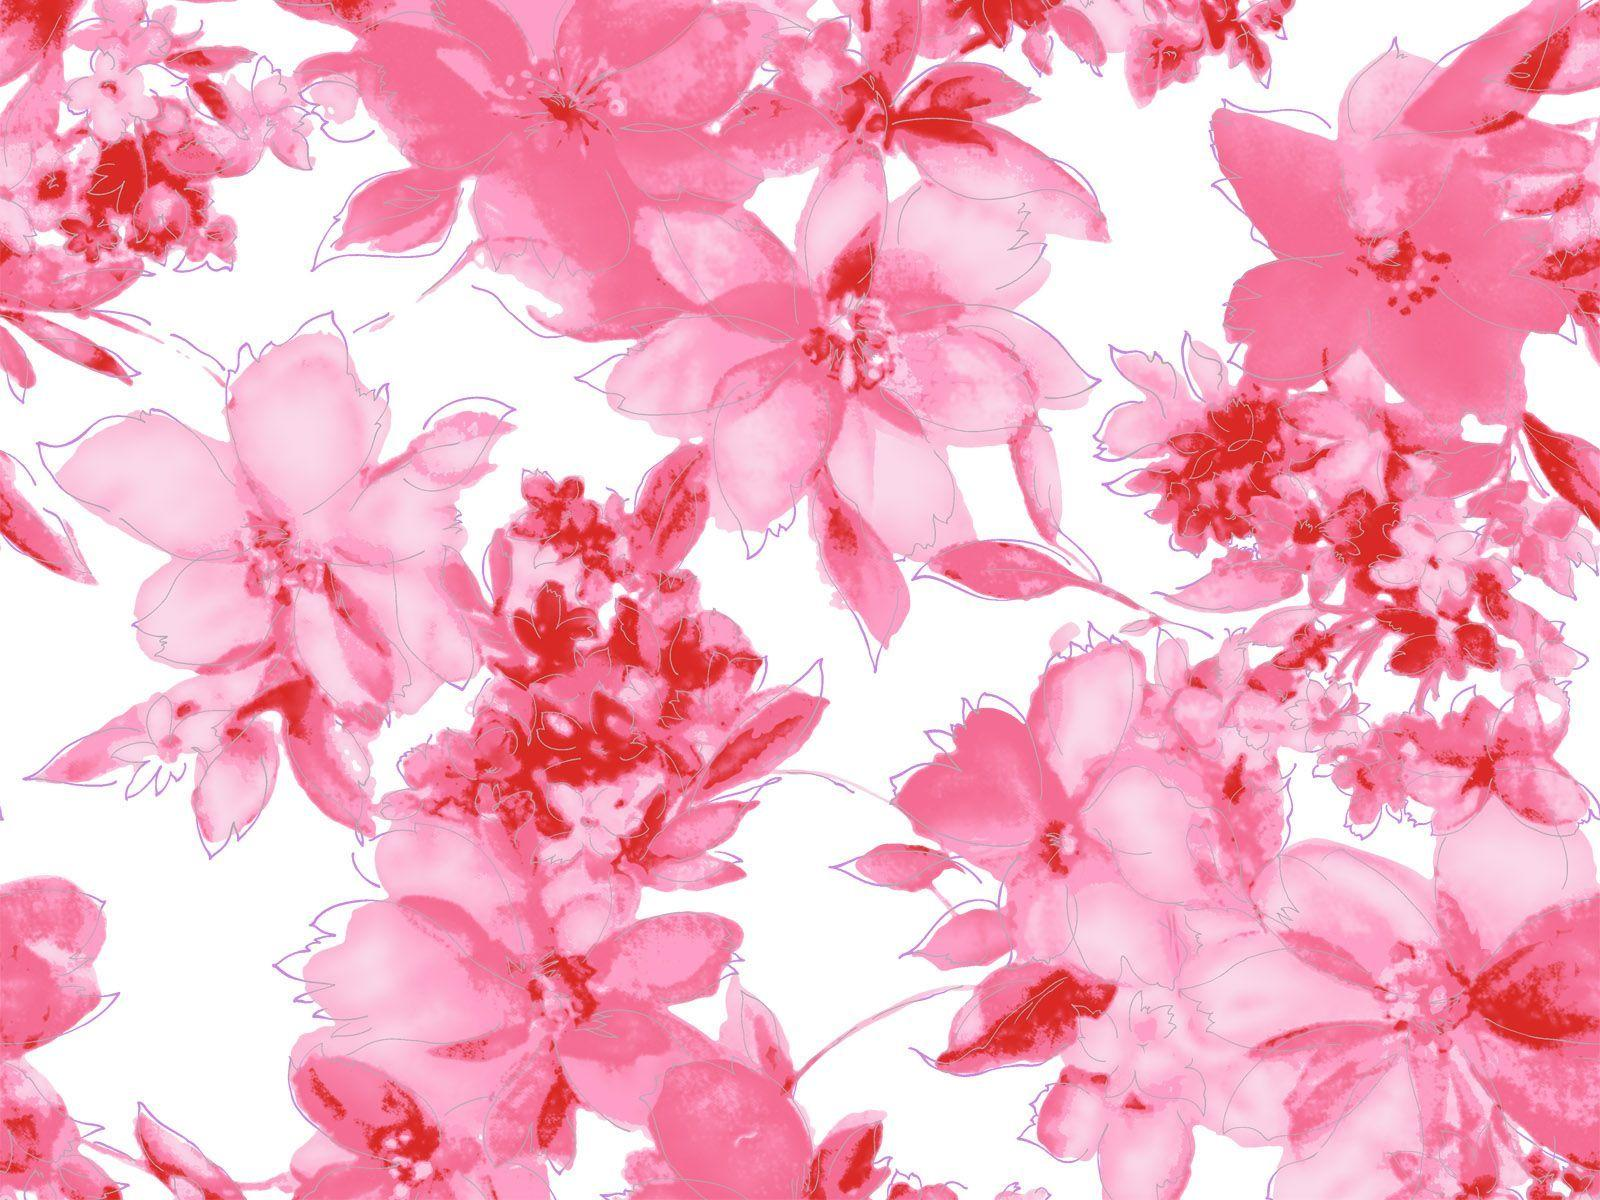 Pink flower image backgrounds wallpaper cave hot pink flowers background widescreen 2 hd wallpapers aduphoto mightylinksfo